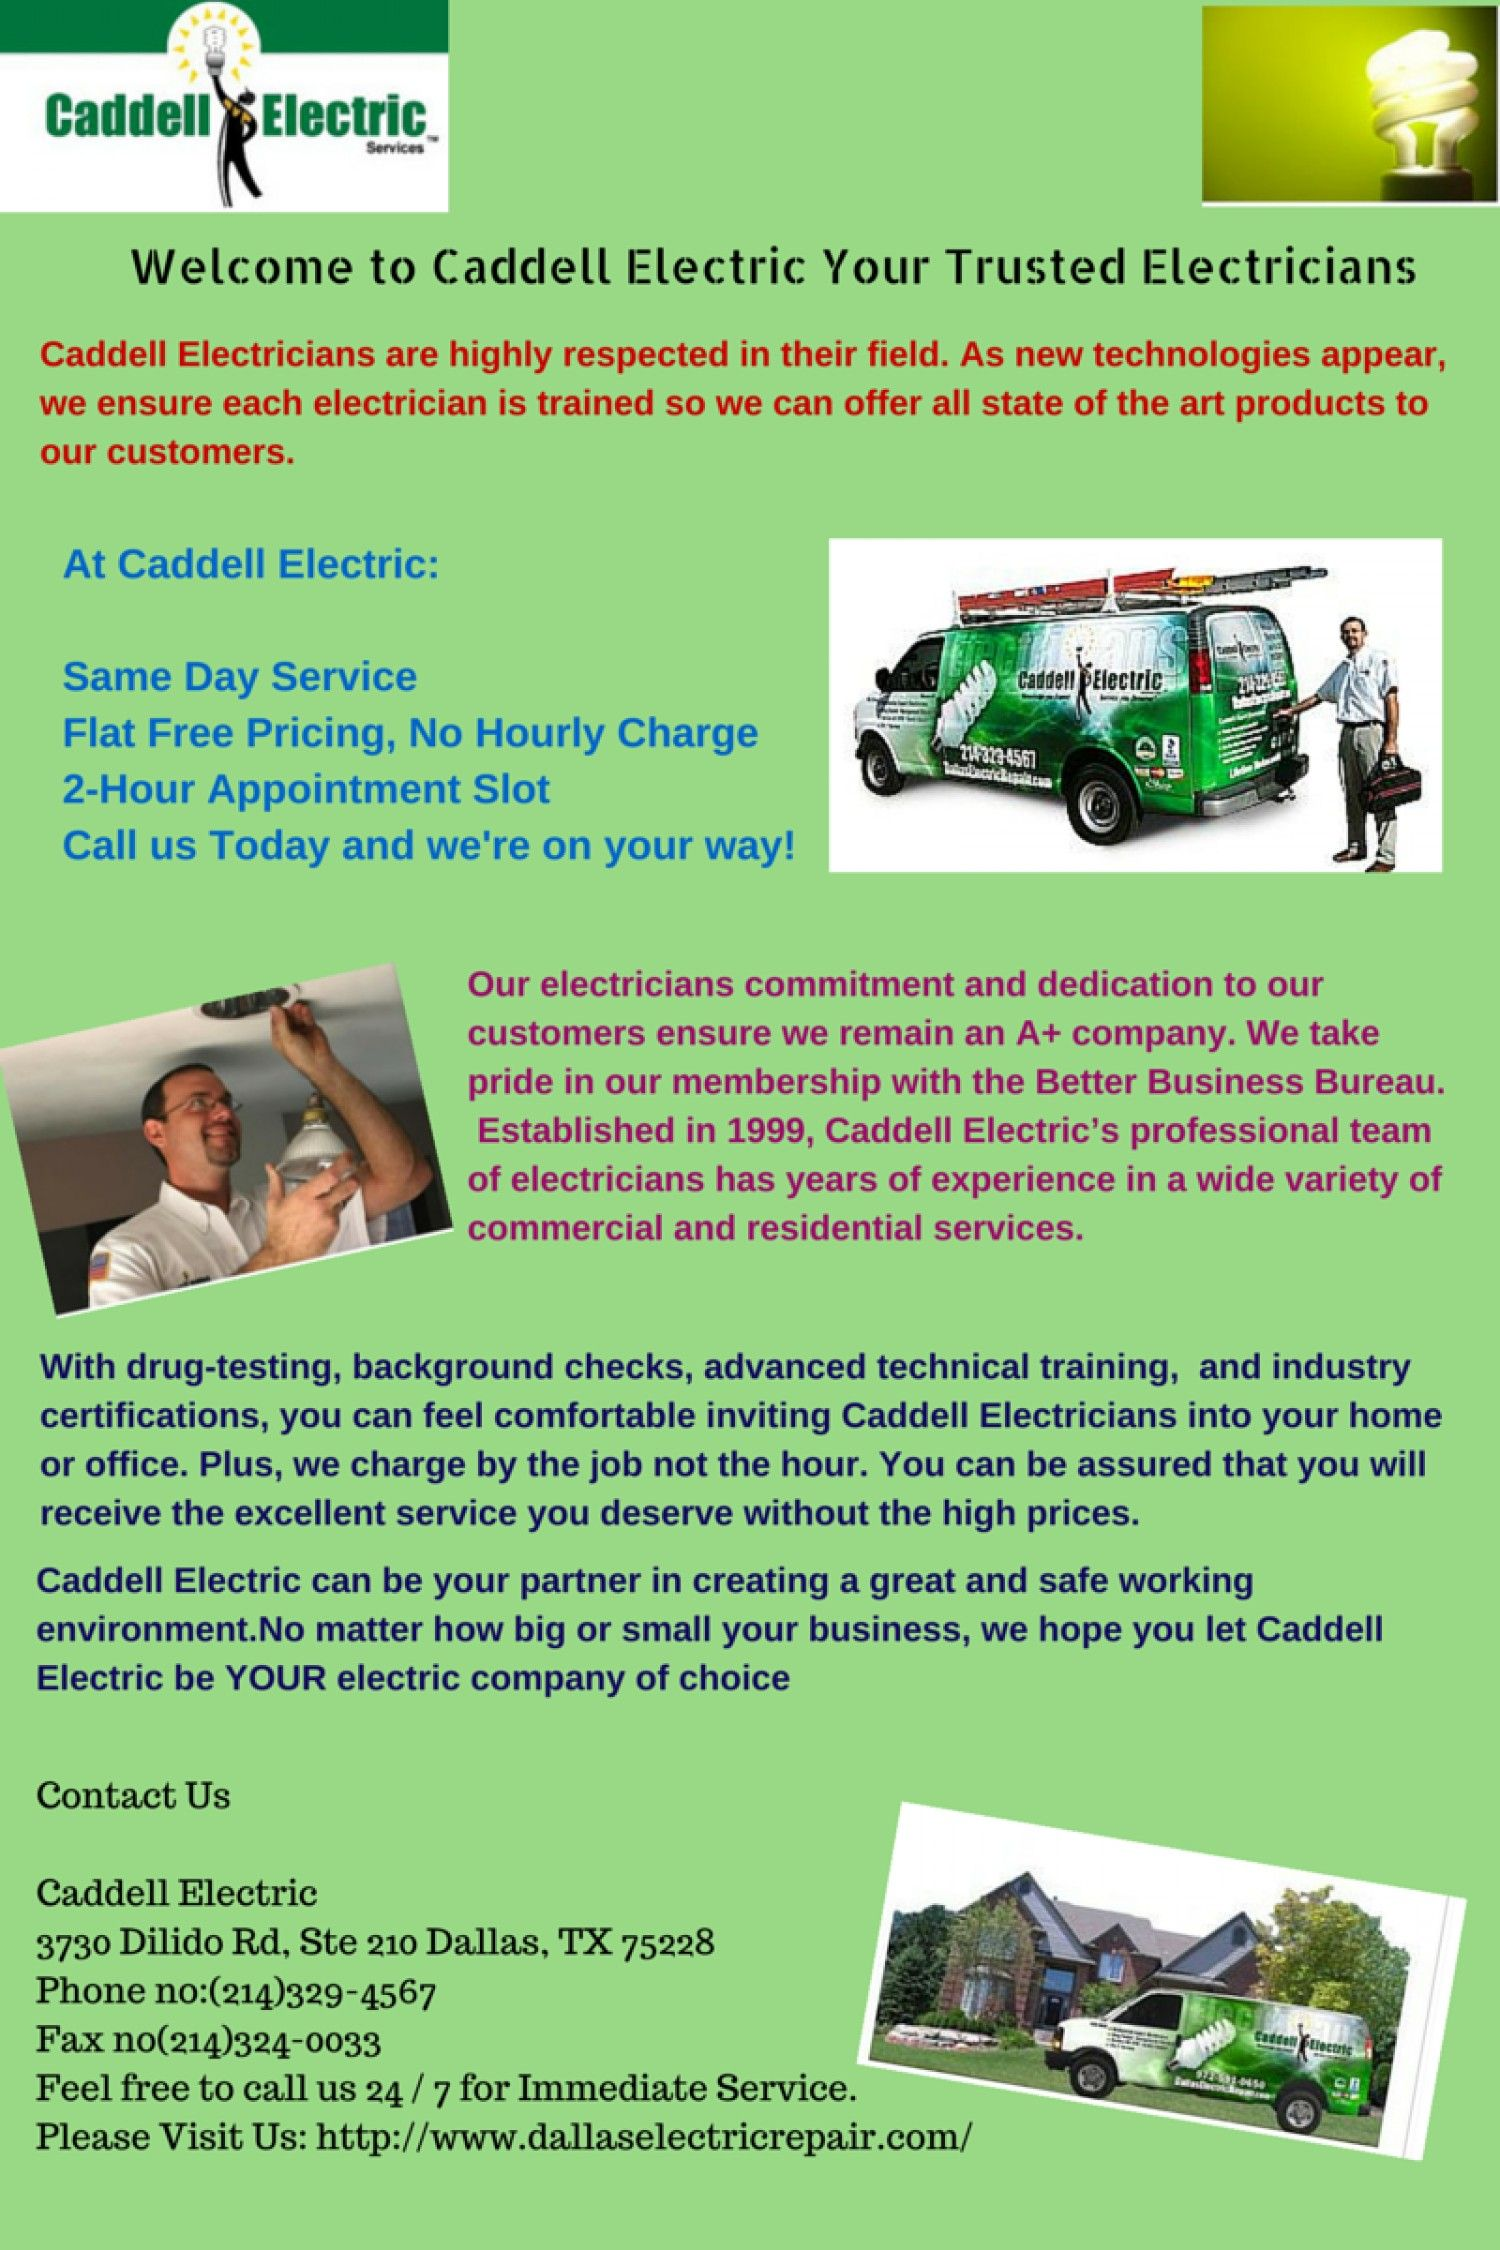 to Caddell Electric Your Trusted Electricians